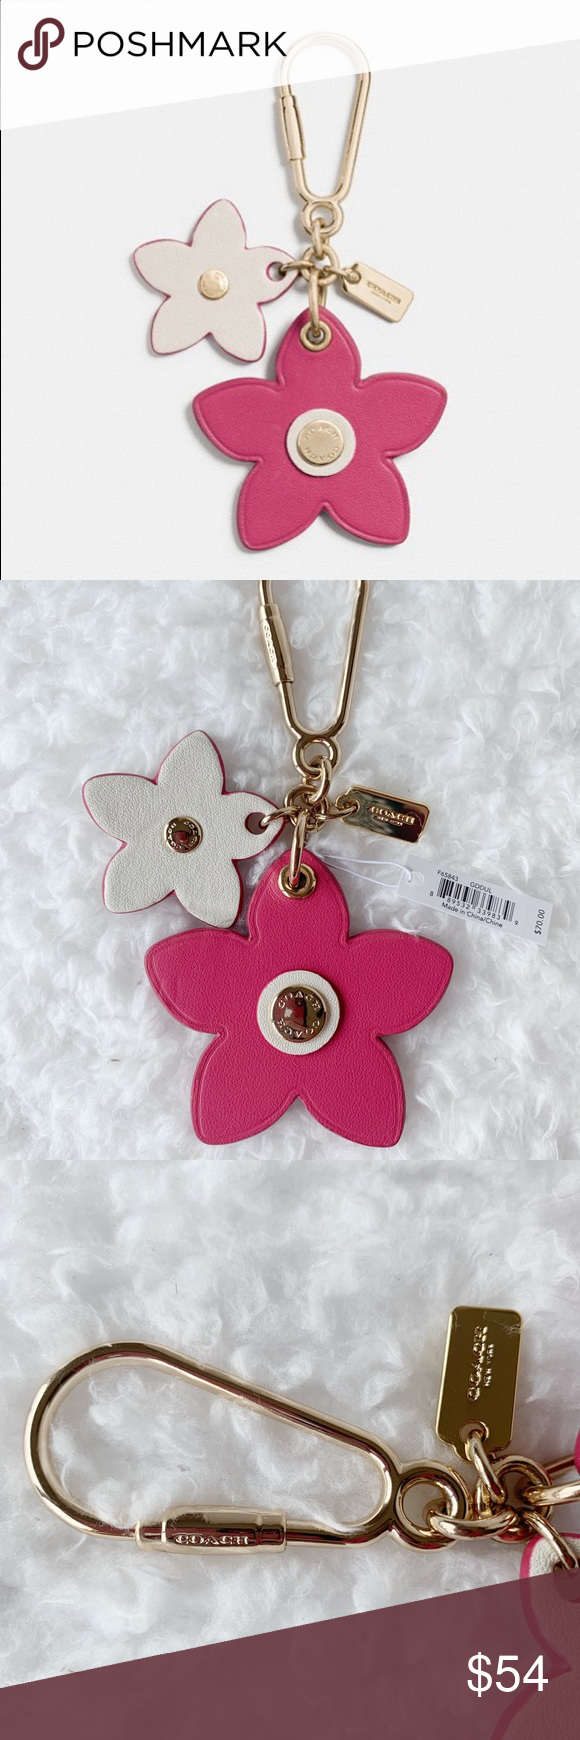 Nwt Coach Flowers Leather Bag Charm For Sale Is The Very Dainty